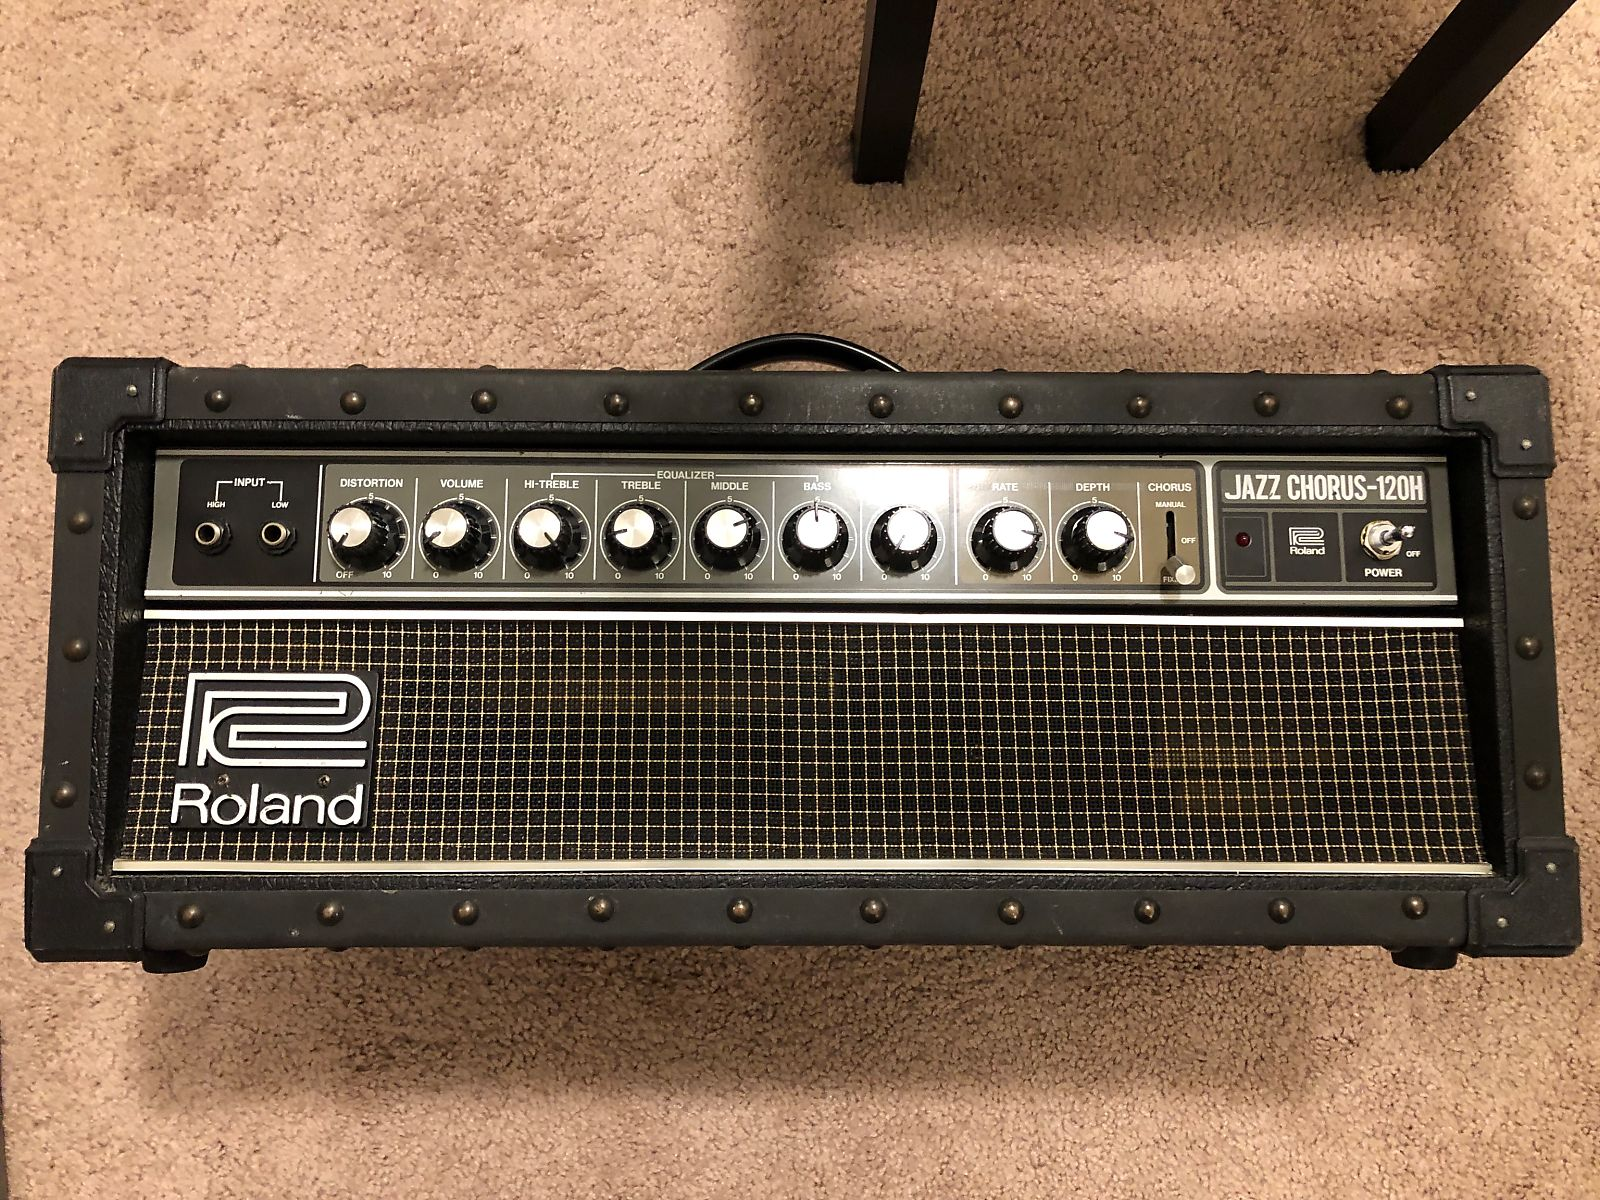 roland jazz chorus jc-120 serial number